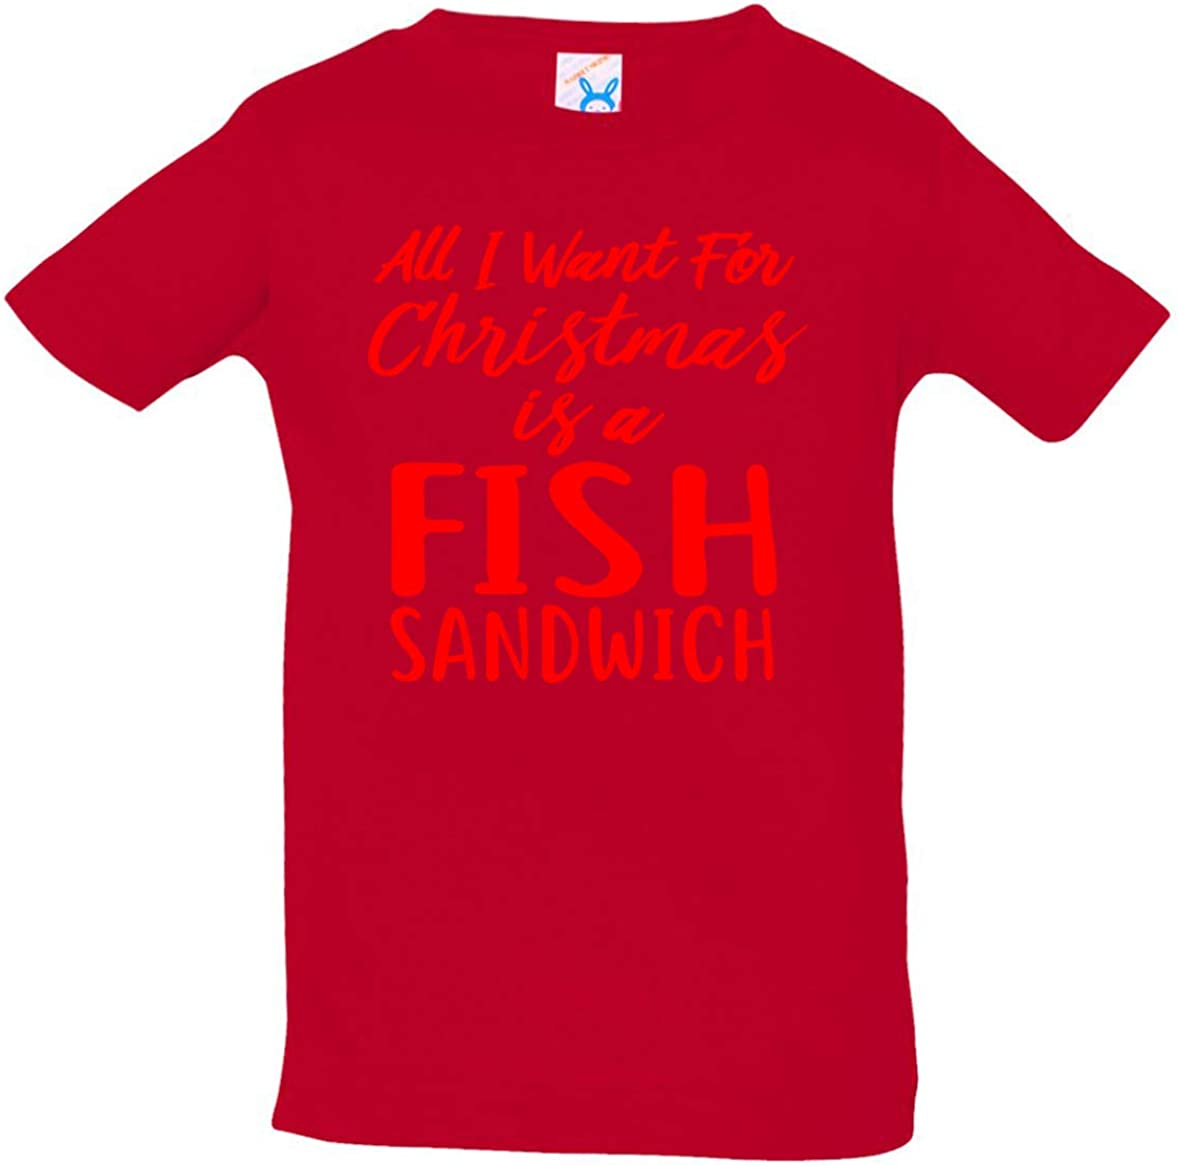 Tenacitee Babys All I Want for Christmas is a Fish Sandwich Shirt